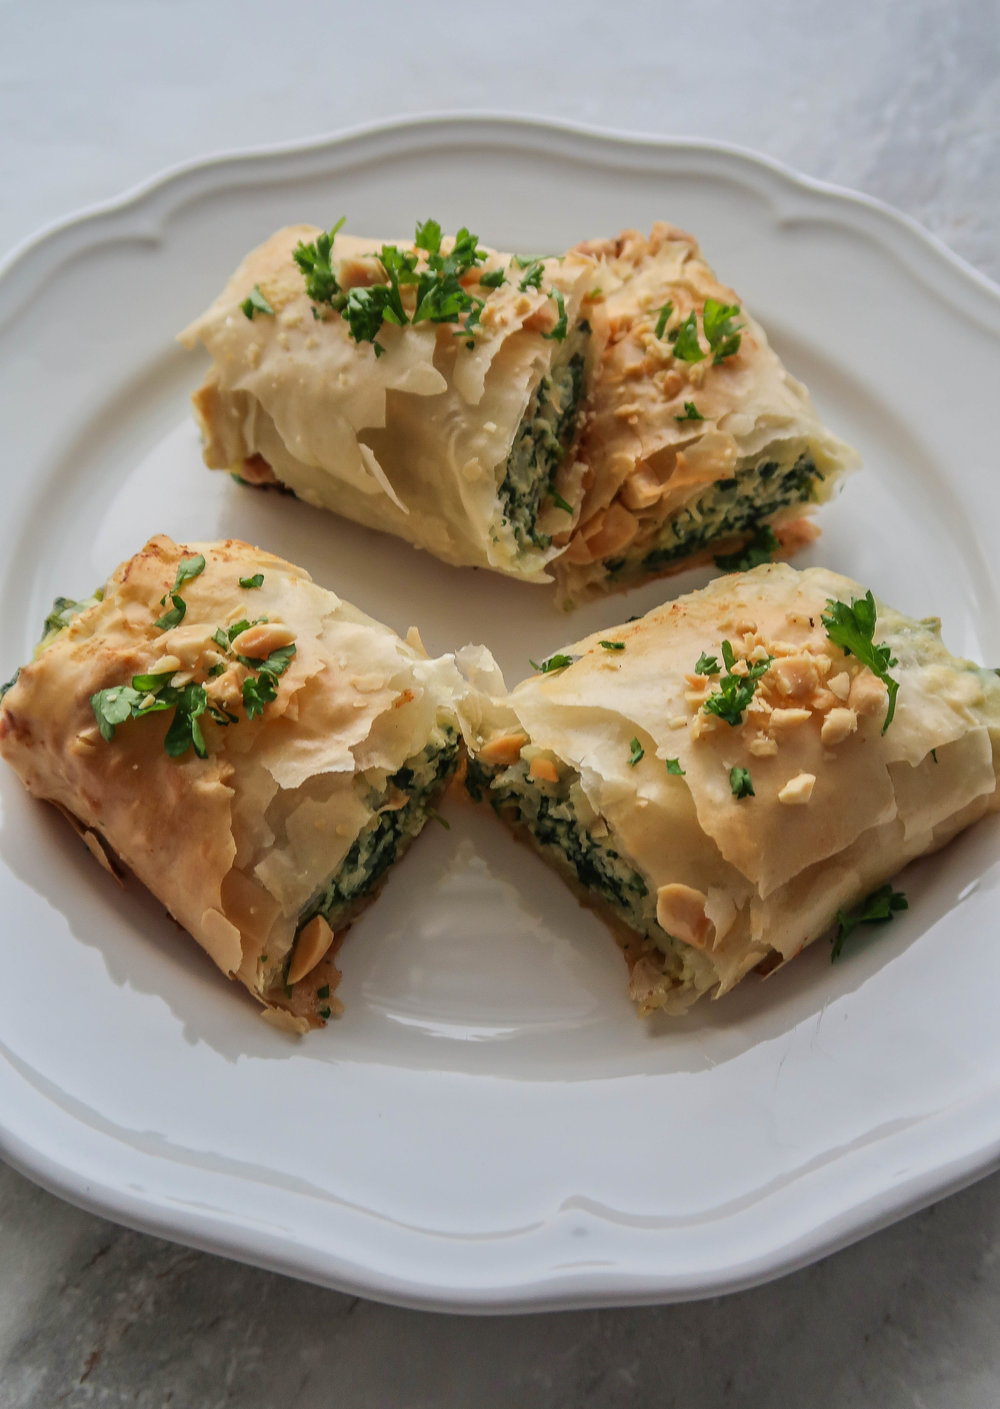 A plate with four Spinach and Ricotta Spanakopita Roll halves.